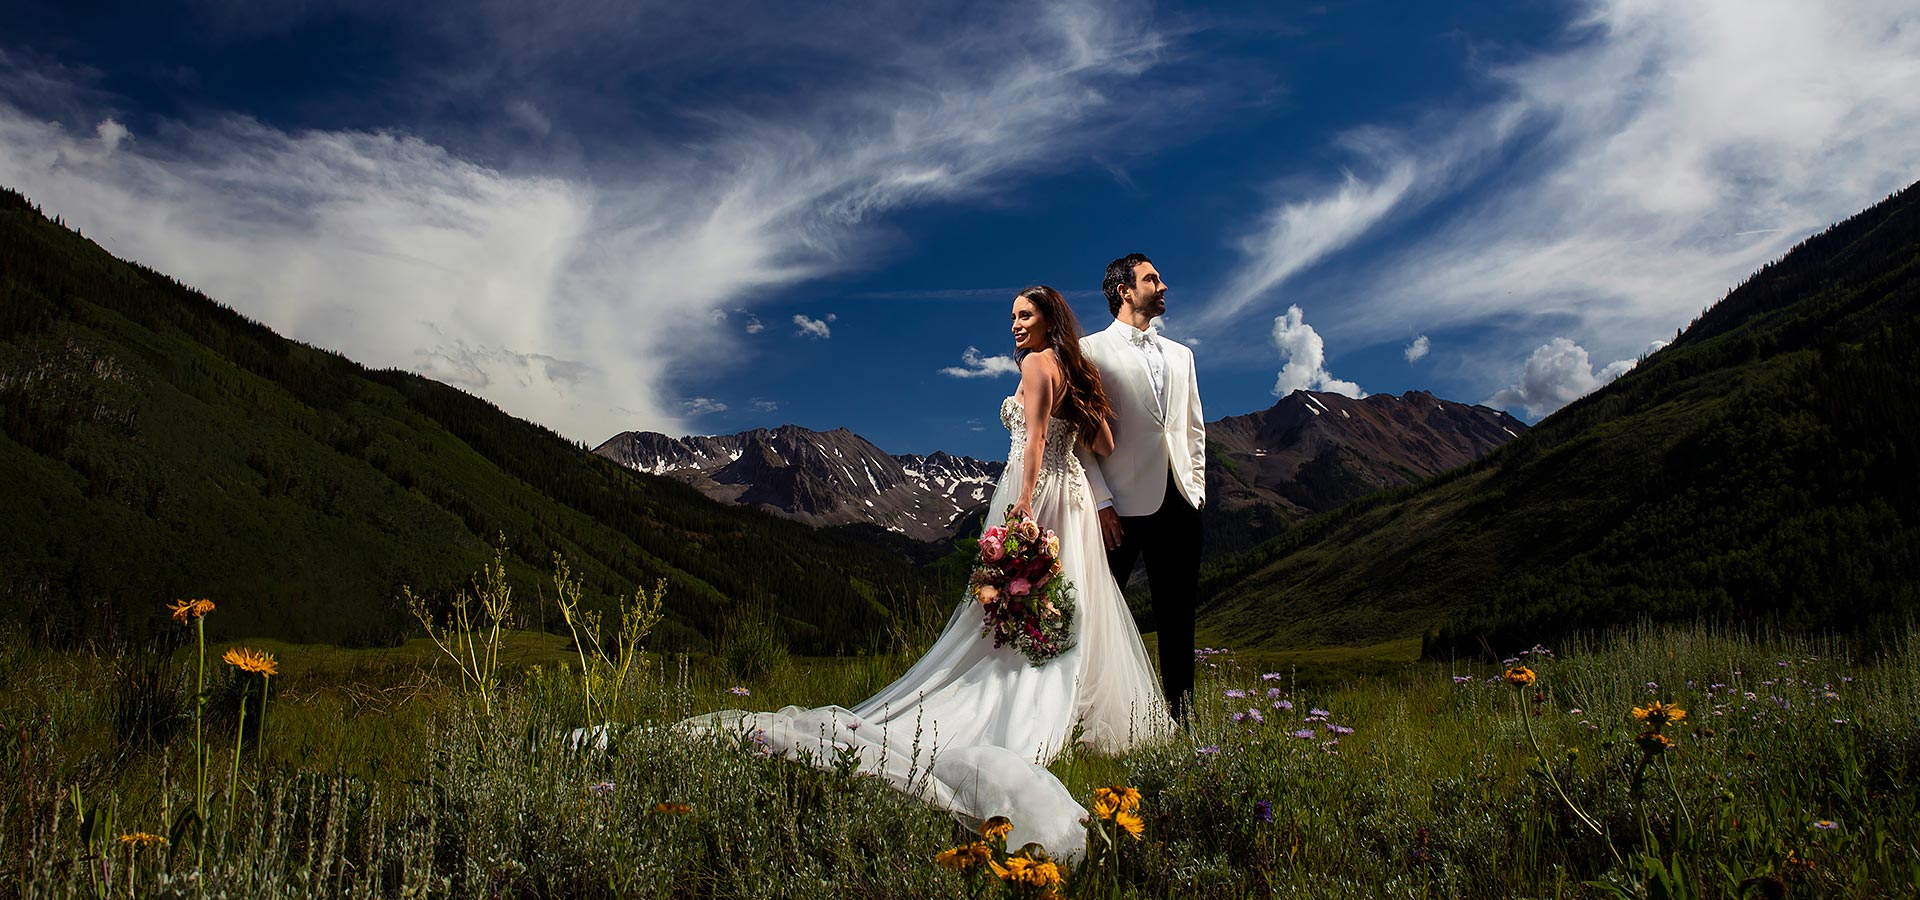 Dream Wedding Shots | Pine Creek Cookhouse Wedding | Aspen Wedding Photographer | J. La Plante Photo